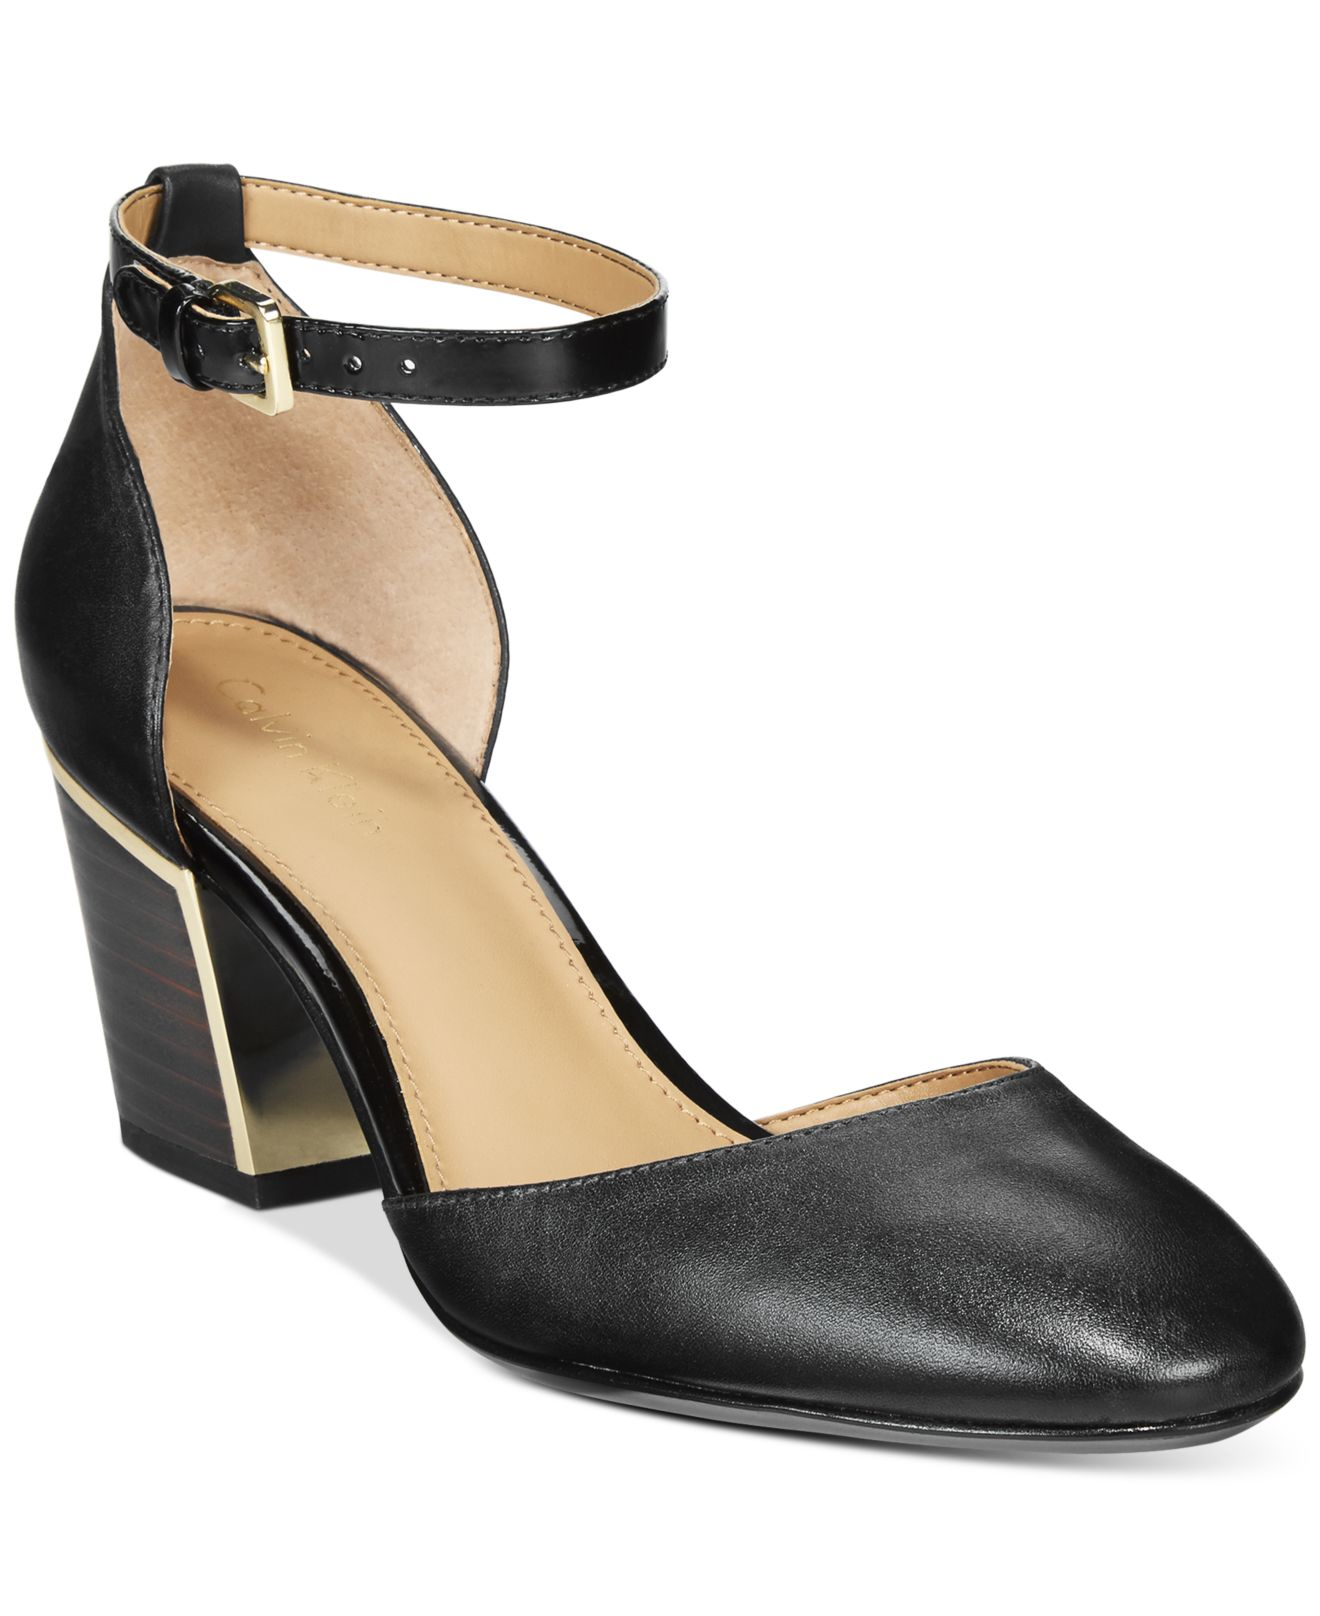 Calvin Klein Black And Gold Shoes